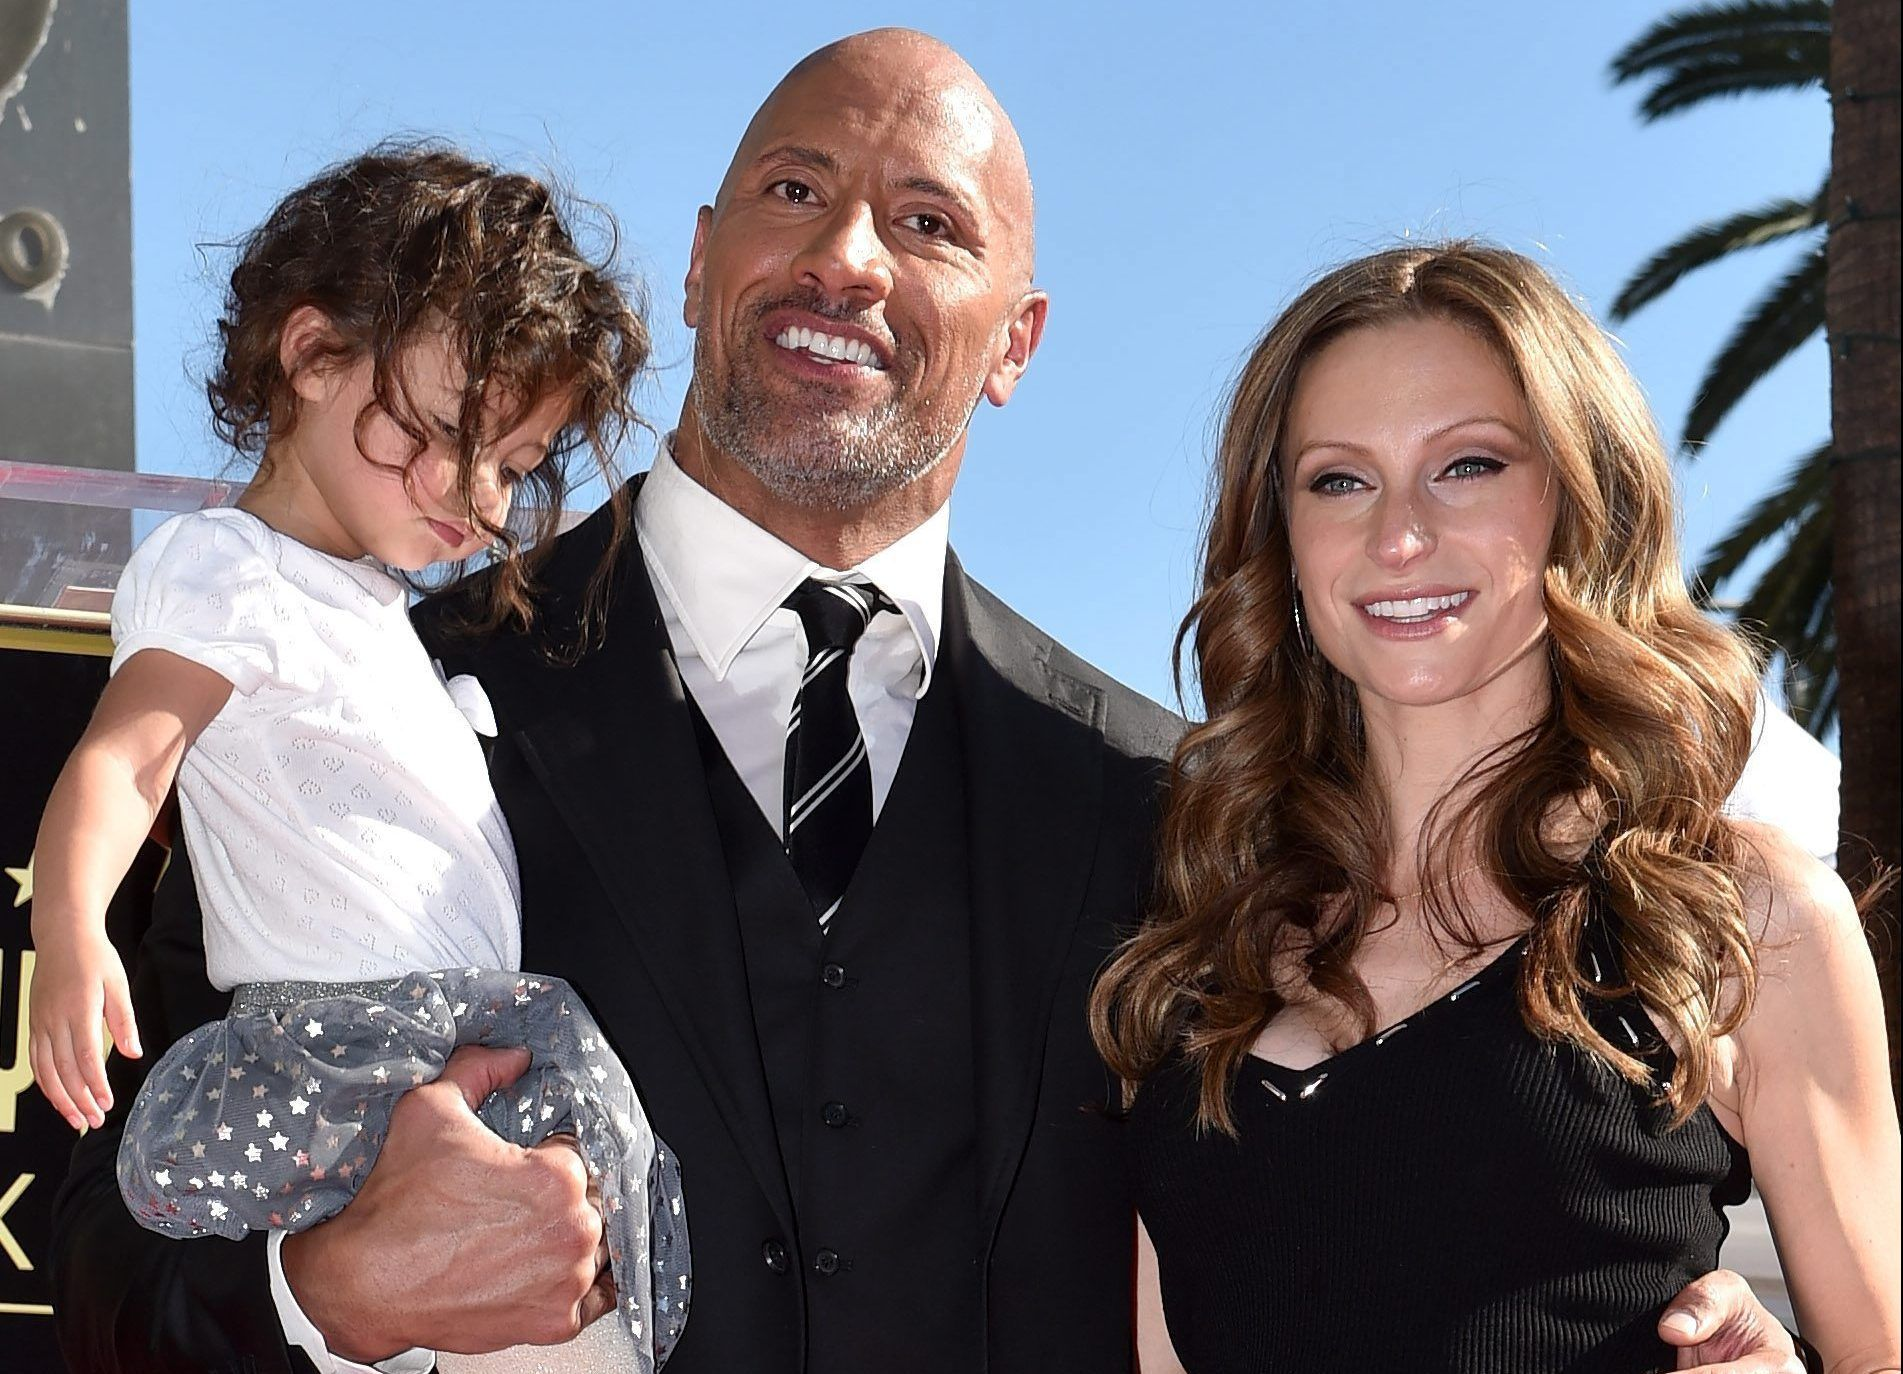 Dwayne Johnson and his all family tested positive for COVID 19